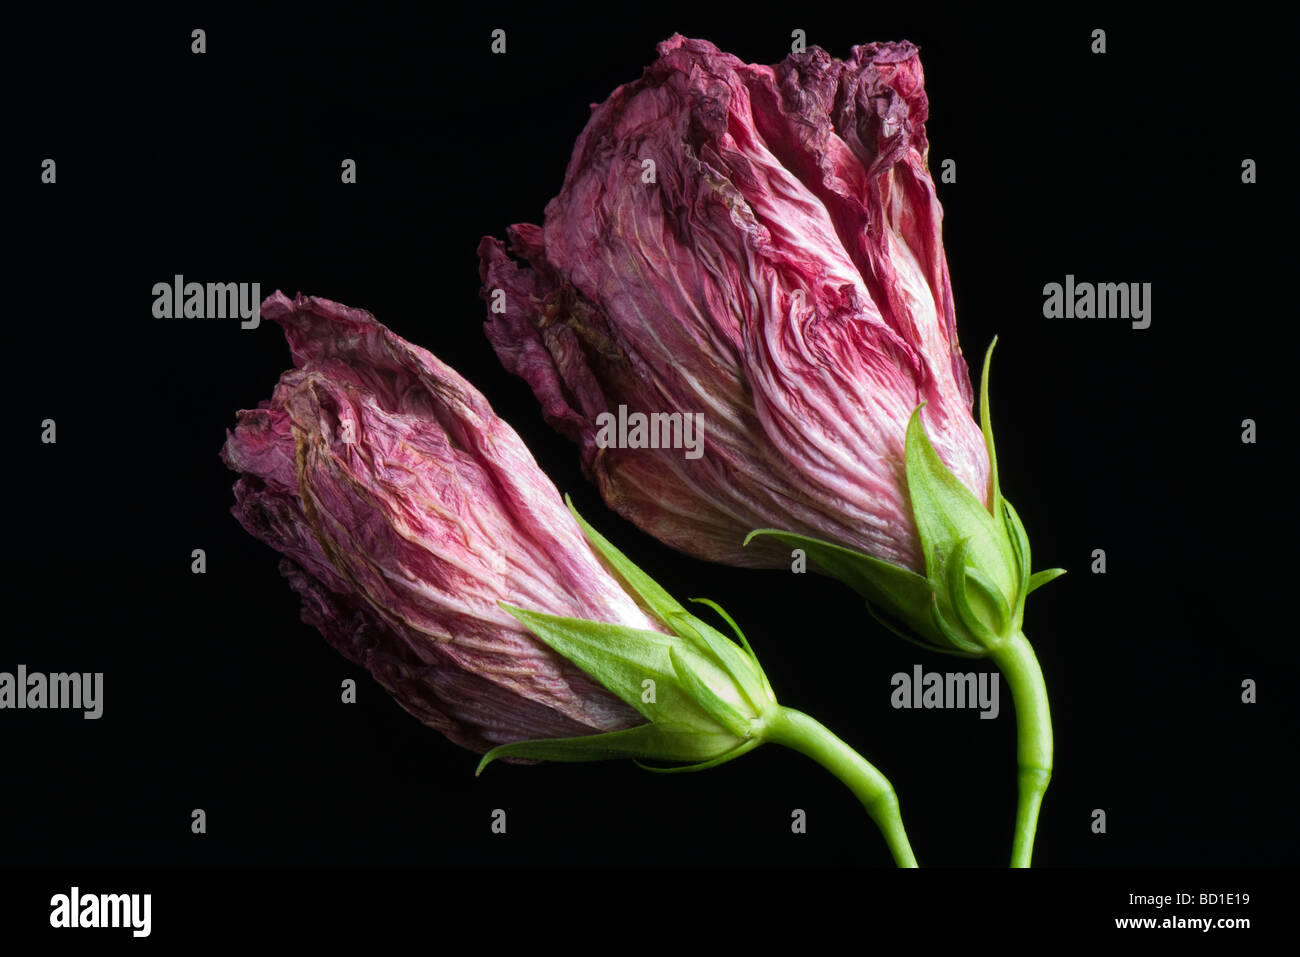 Flowers wilting, side view - Stock Image